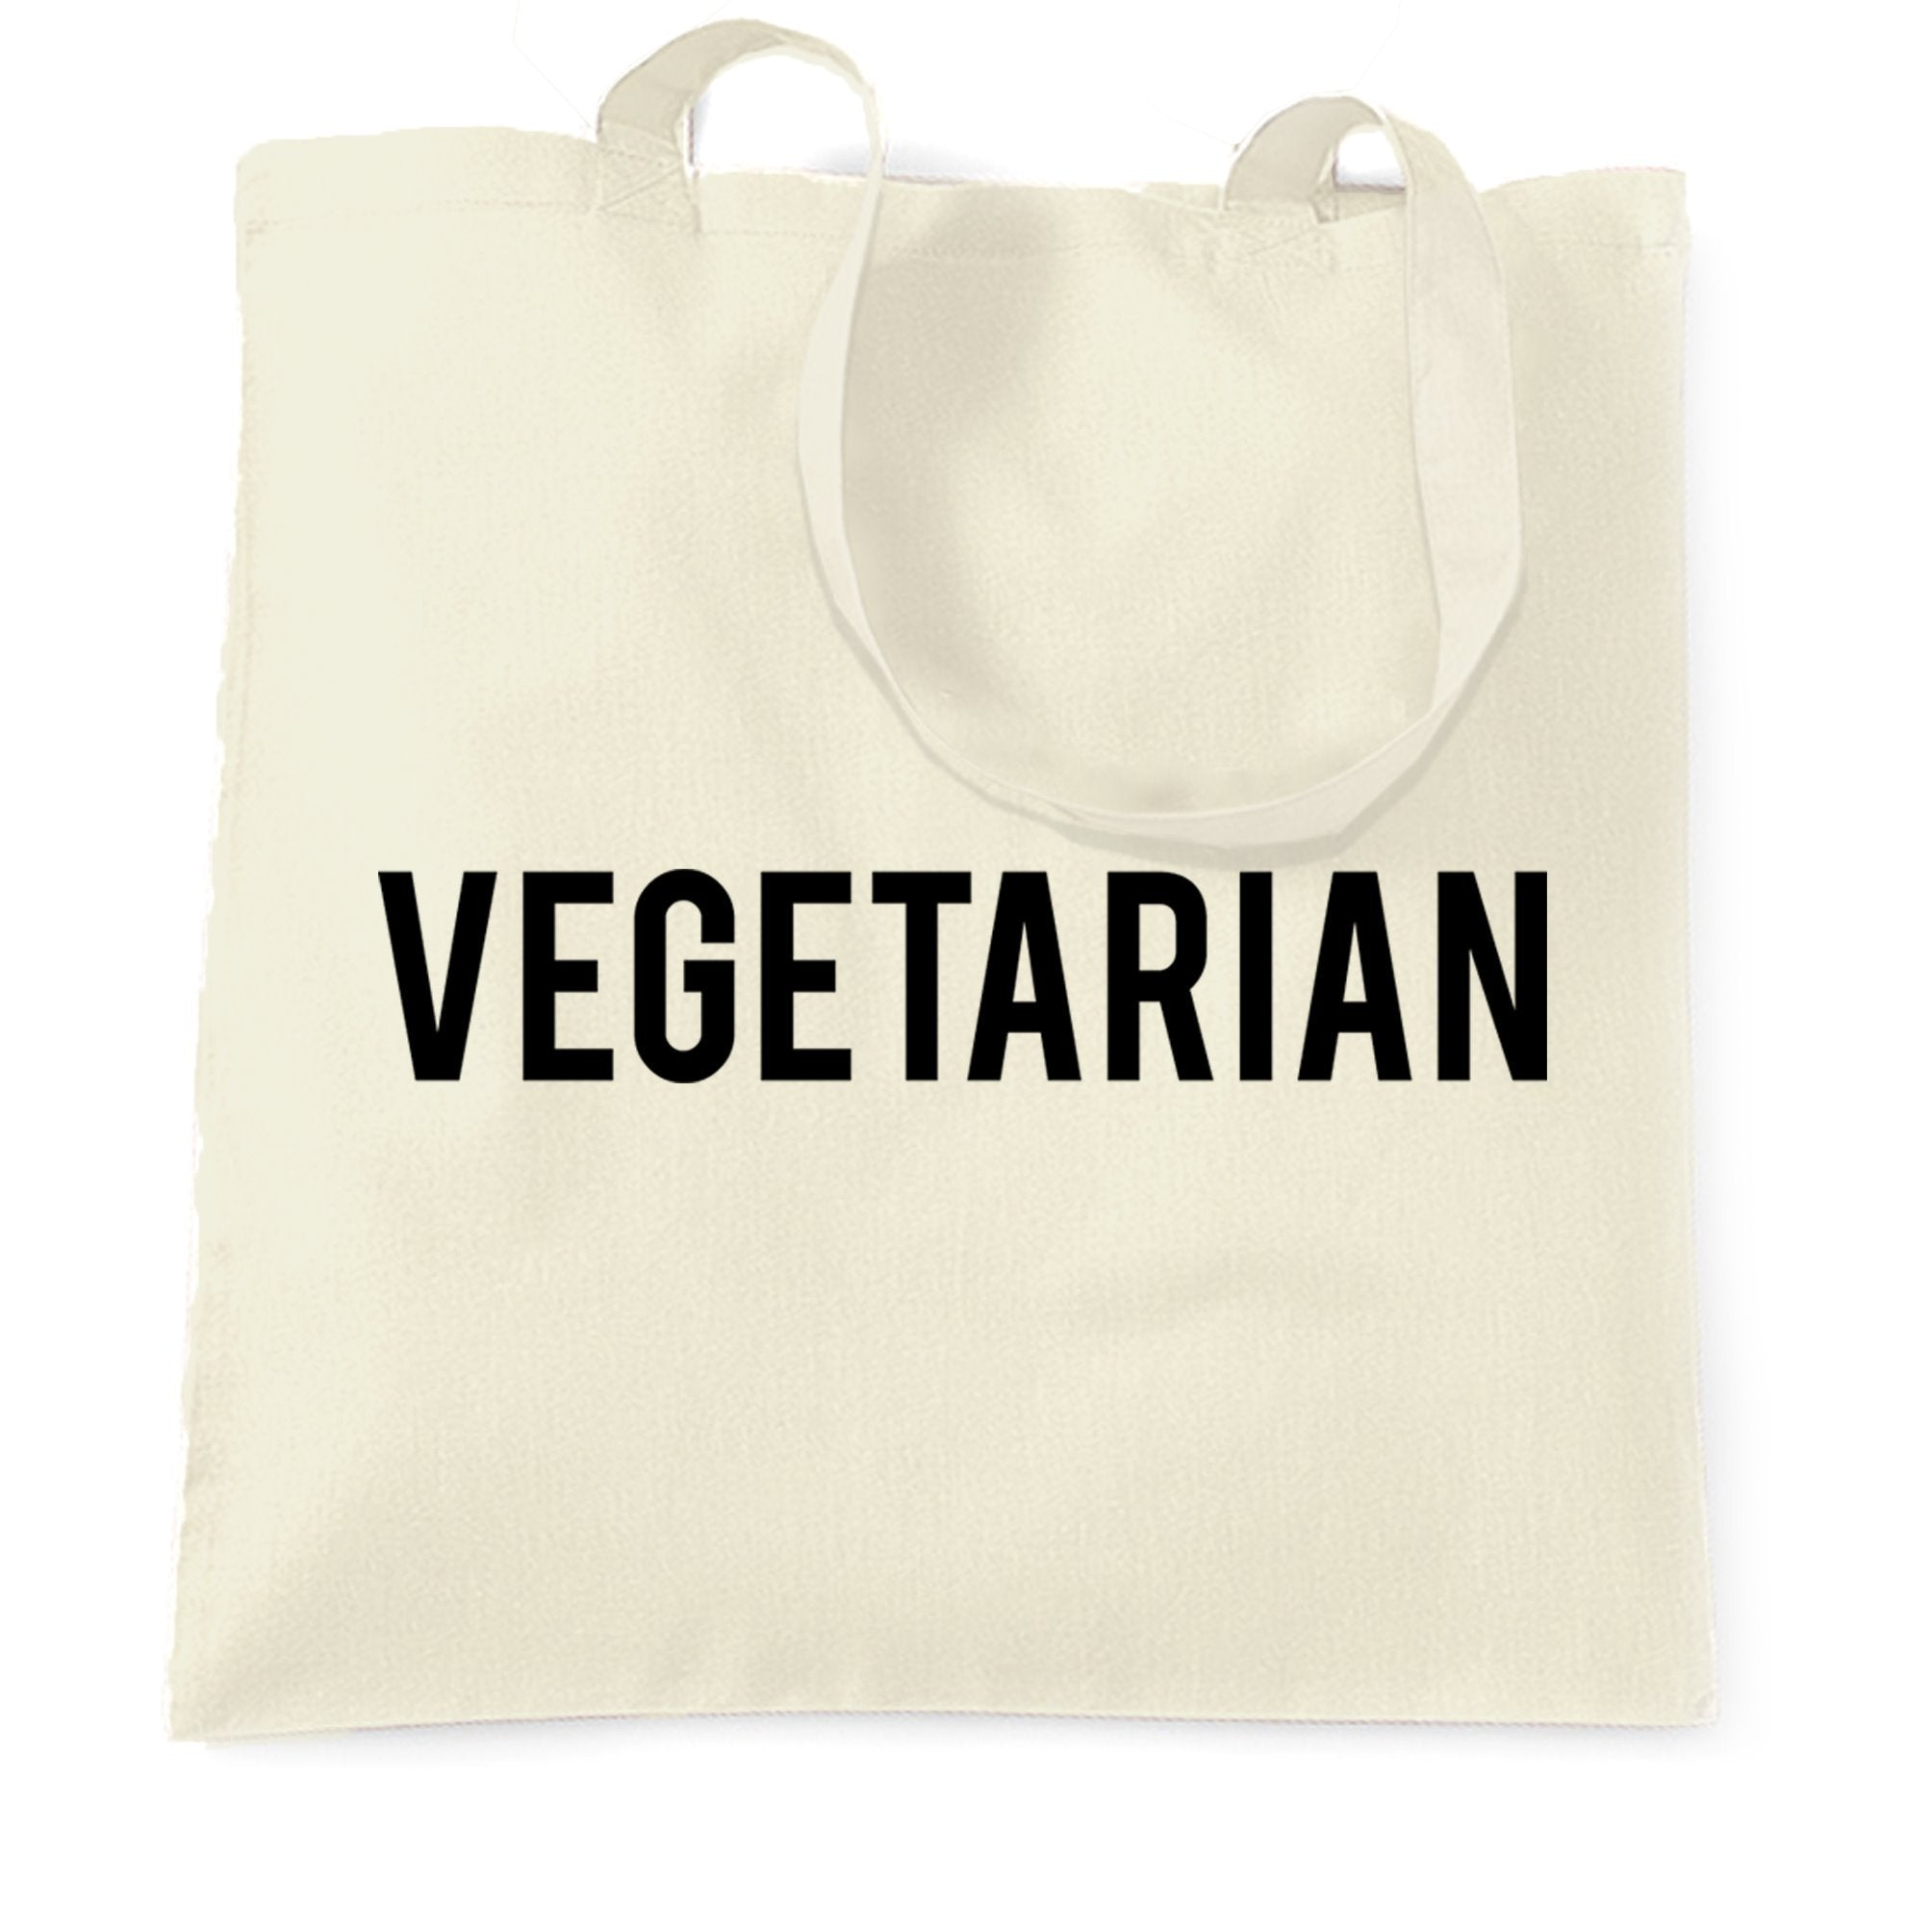 Lifestyle Tote Bag I Am A Vegetarian Text